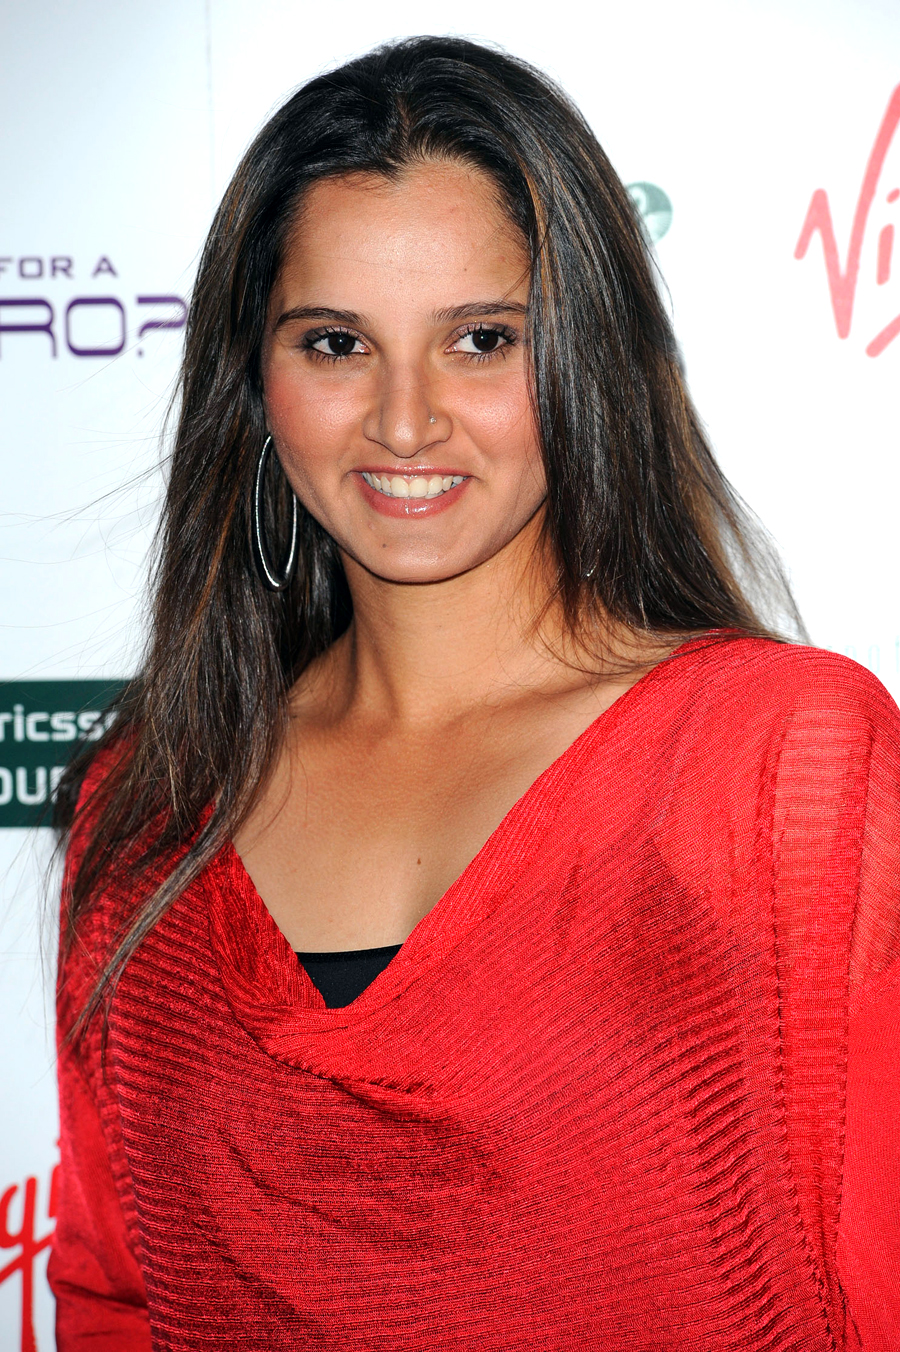 Hd Wallpapers Sania Mirza Hd Wallpapers Free Download-1693